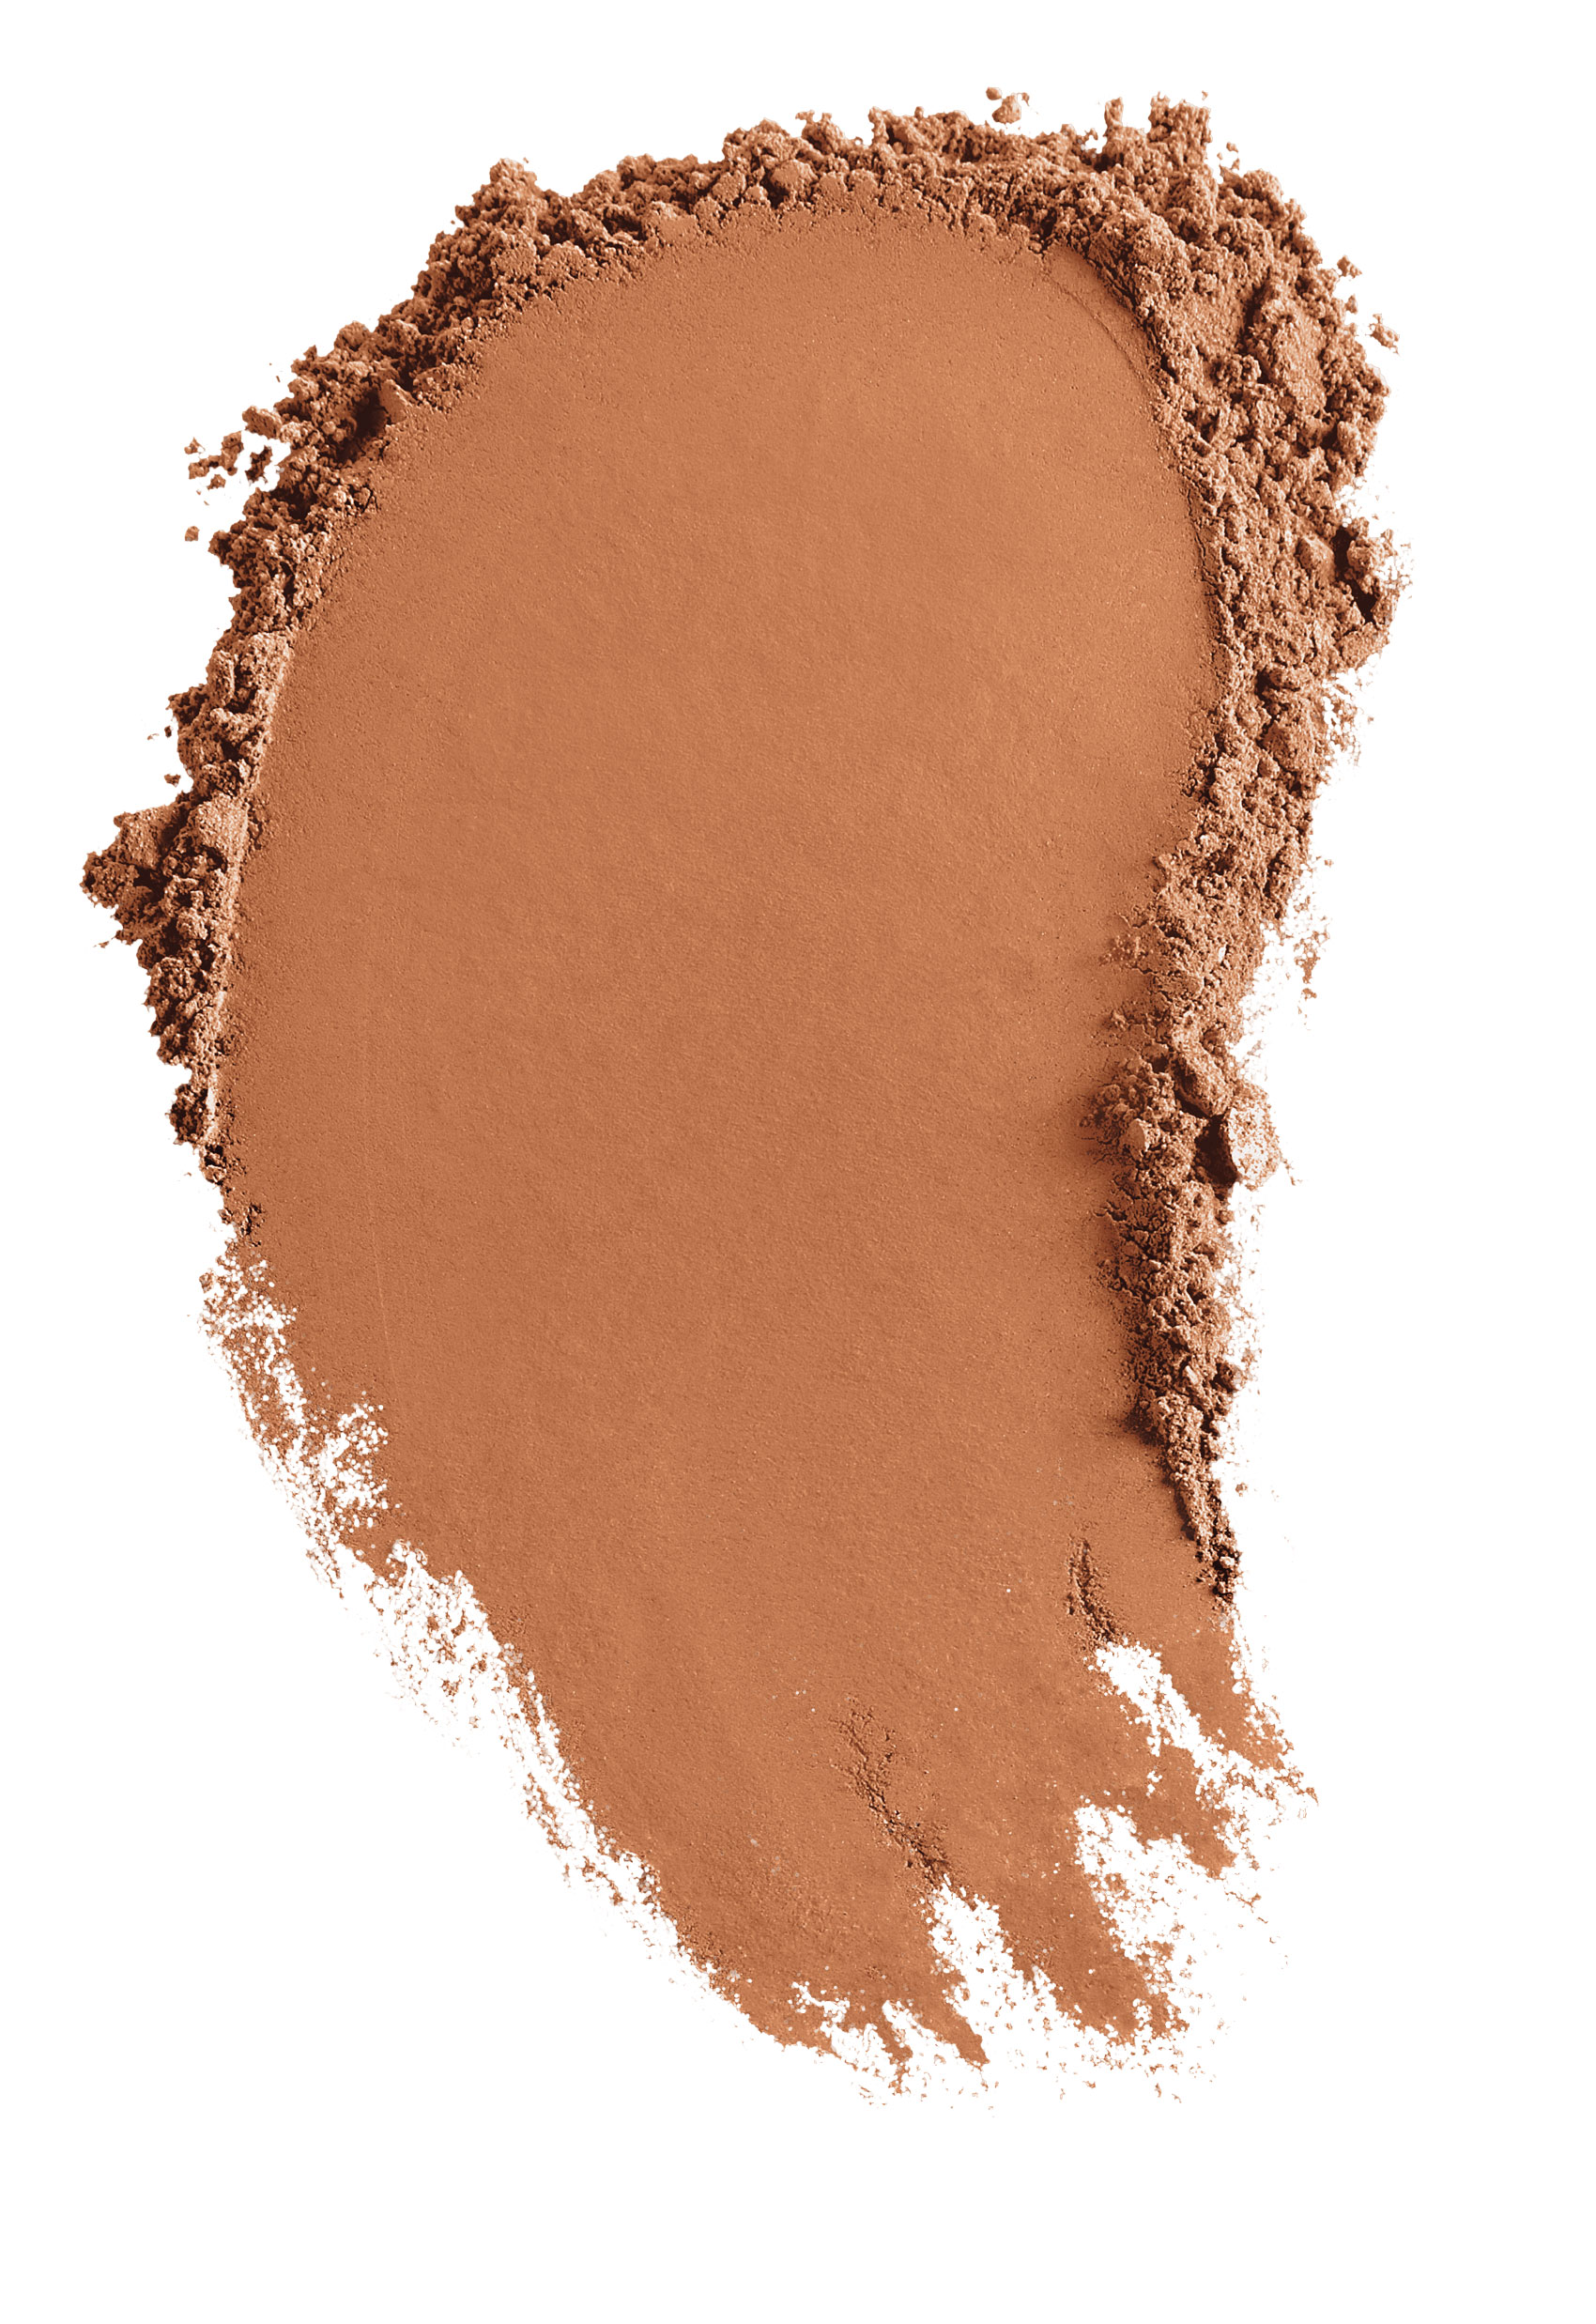 Original_Foundation_Warm_Tan_Smear